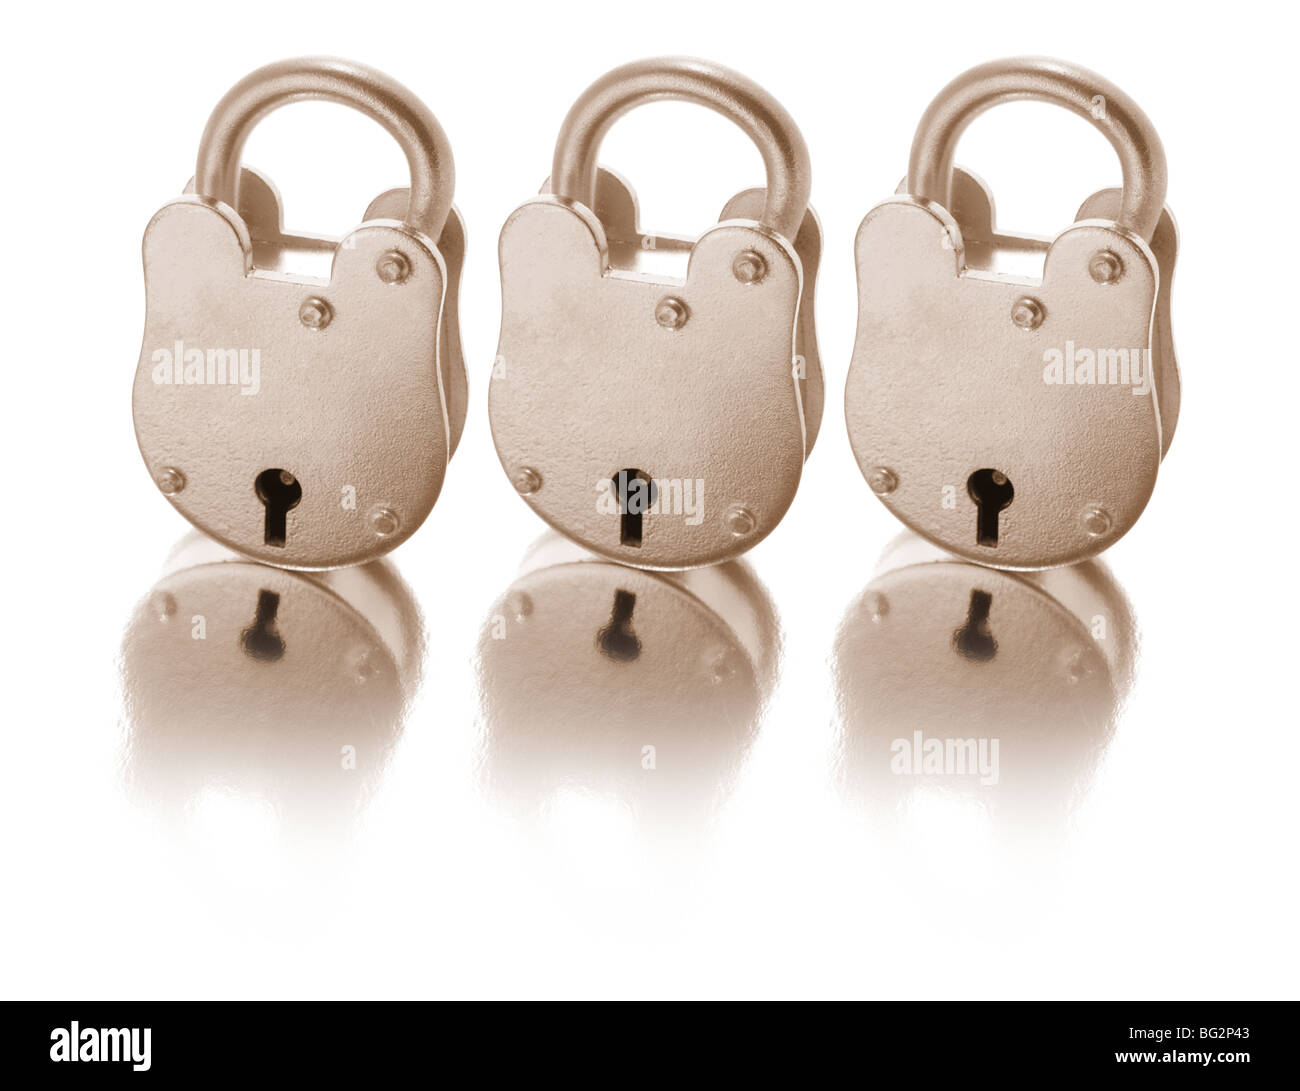 Antique Locks with Reflection - Stock Image